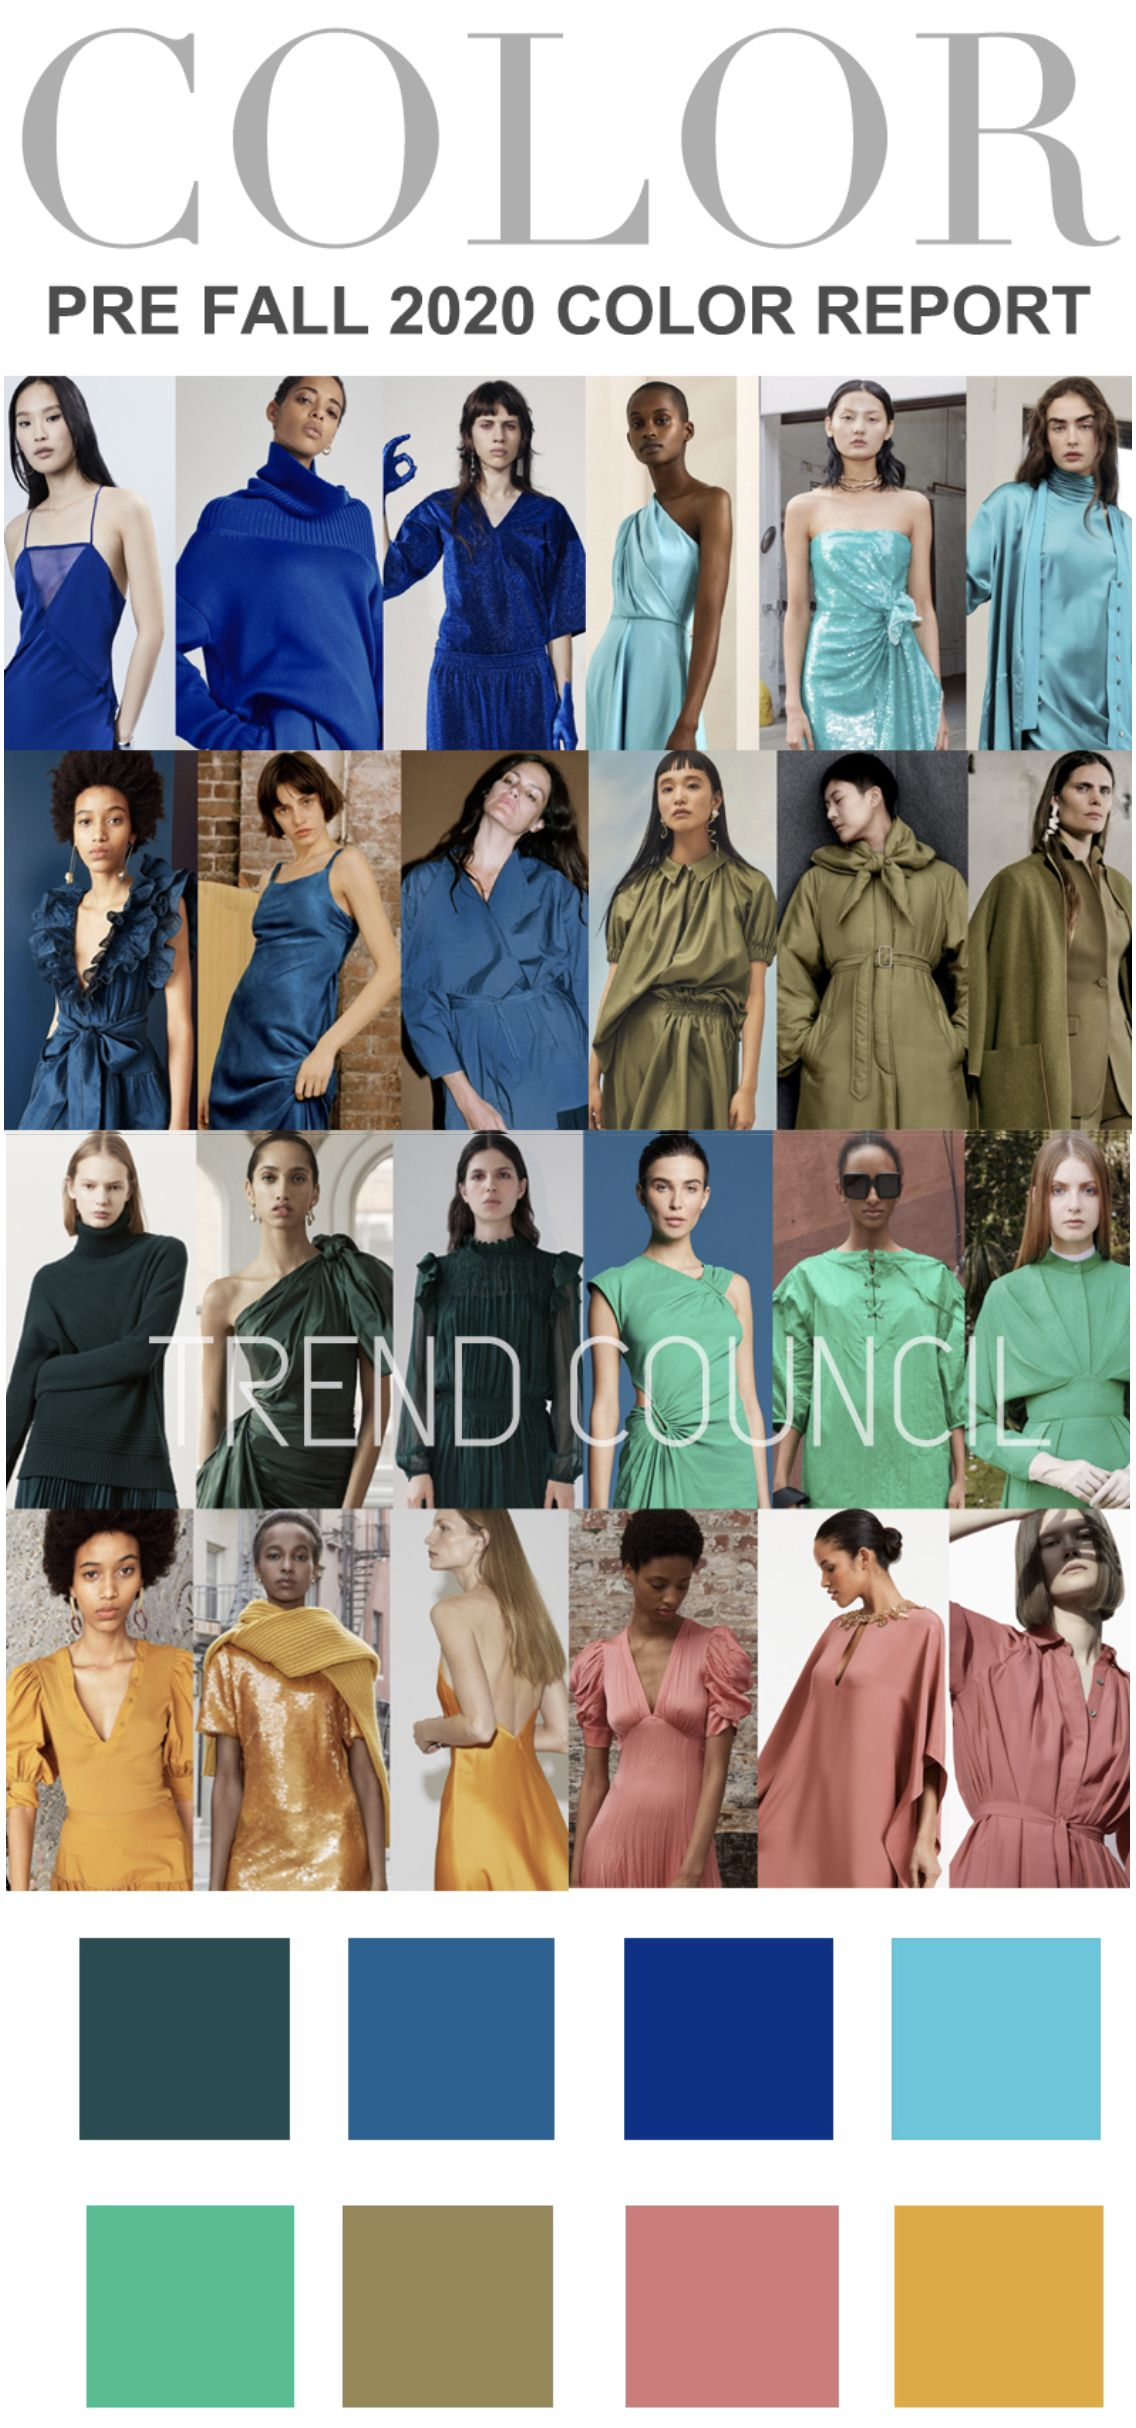 Color Trends 2020 Fashion.2020 Trend Council Colour Report In 2019 Trend Council